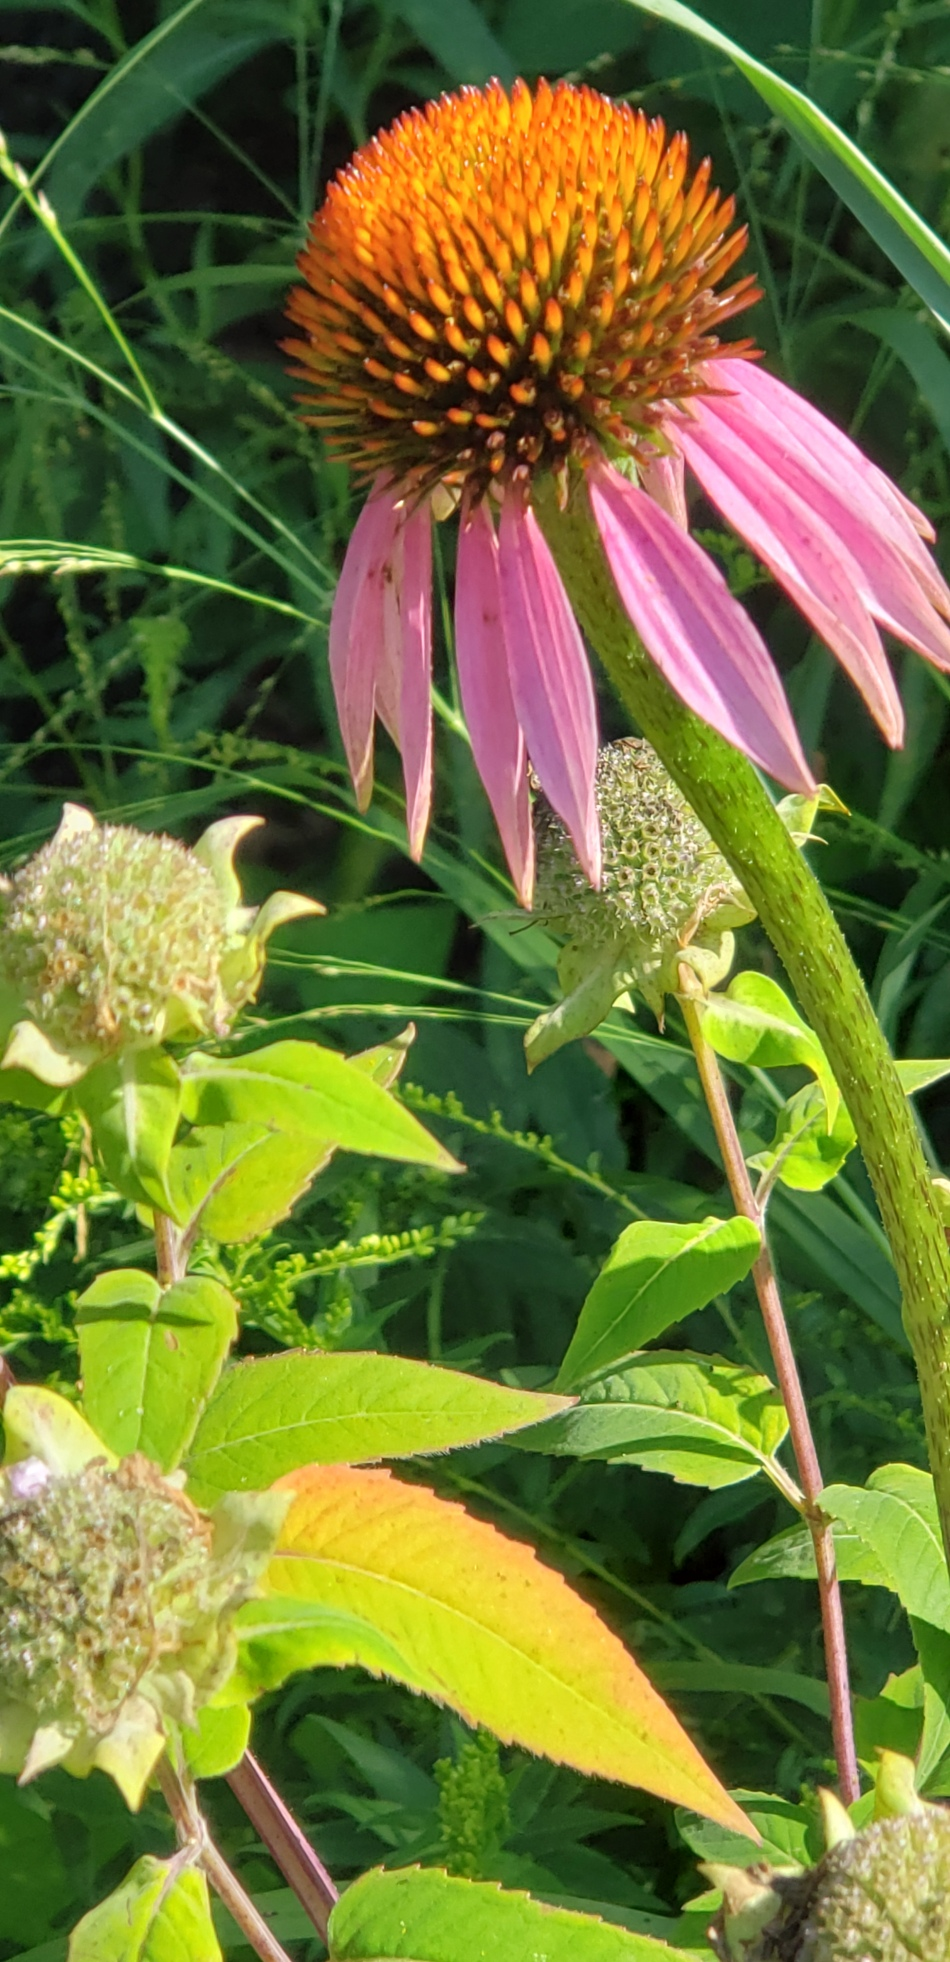 20190817_163225 Coneflower and bee balm